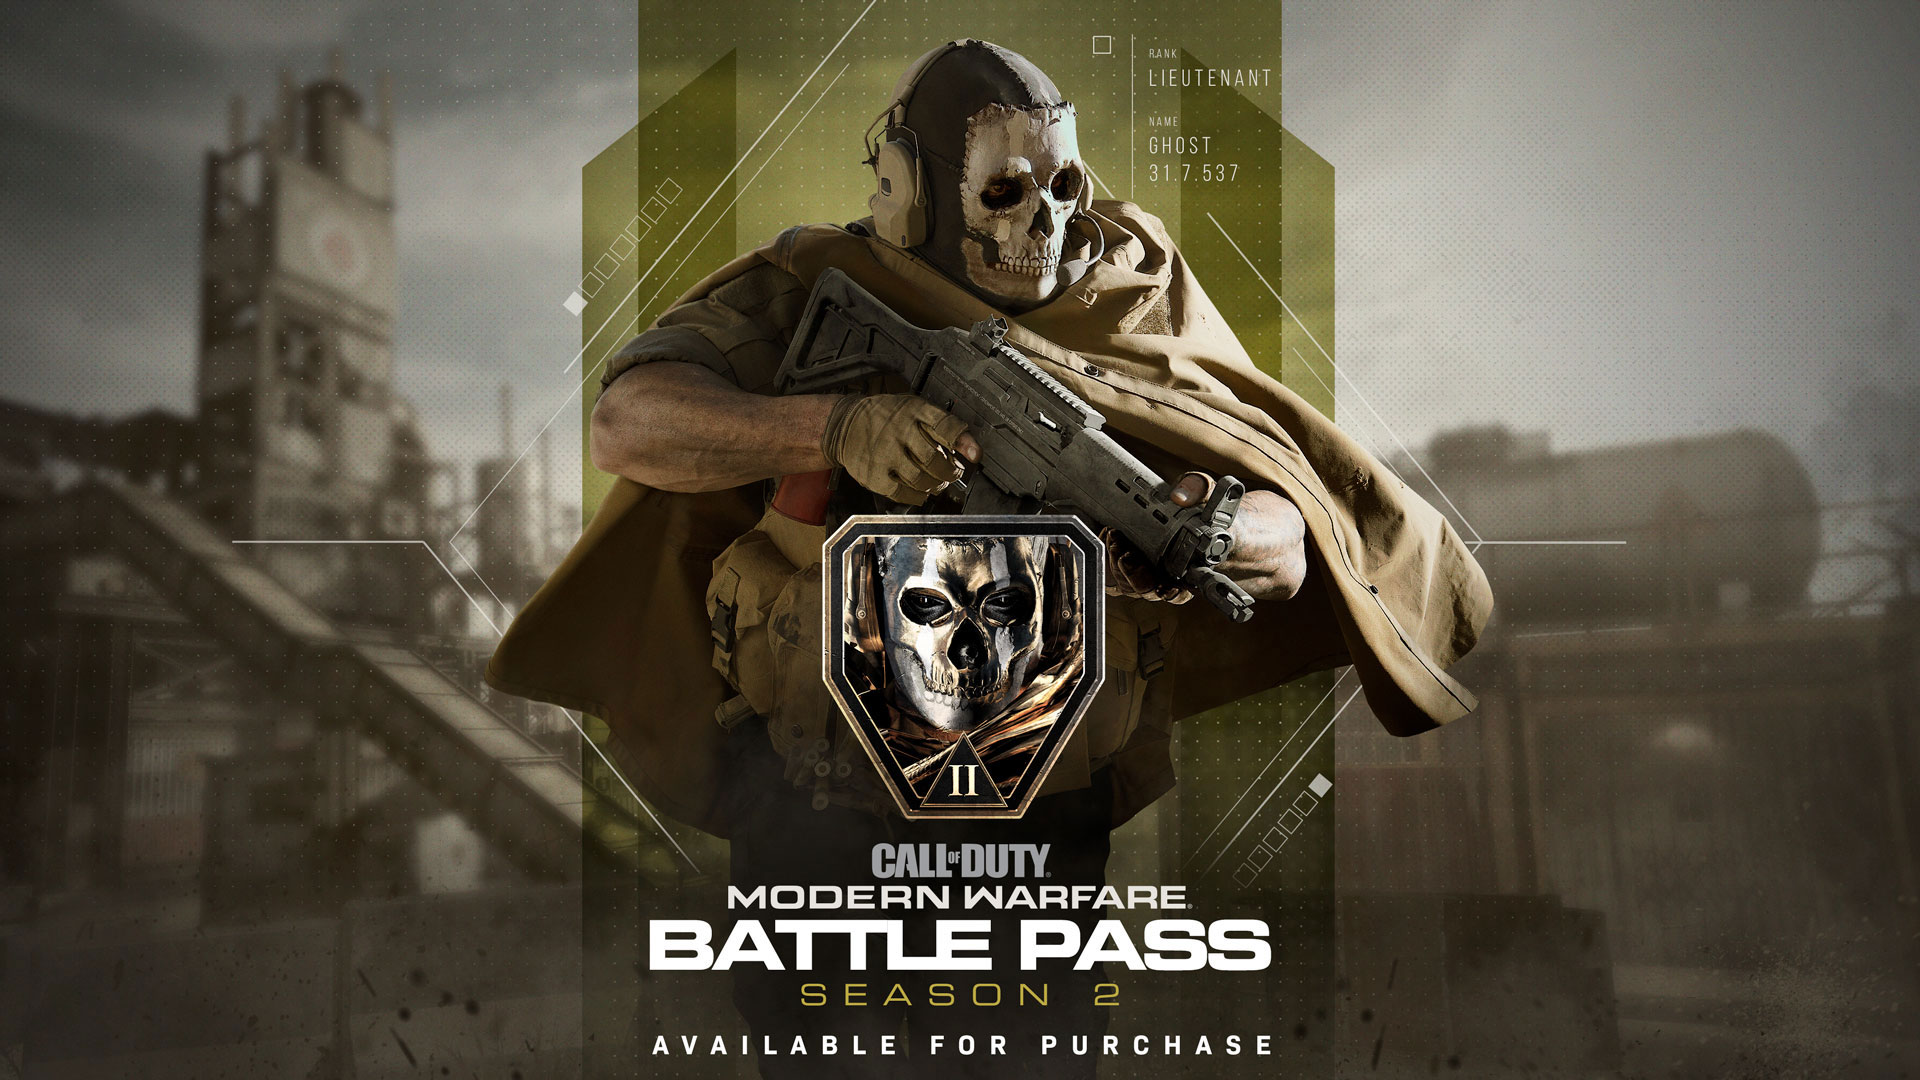 Free-to-Play Call of Duty®: Warzone is Live and Available for Everyone to Download NOW! - Image 2